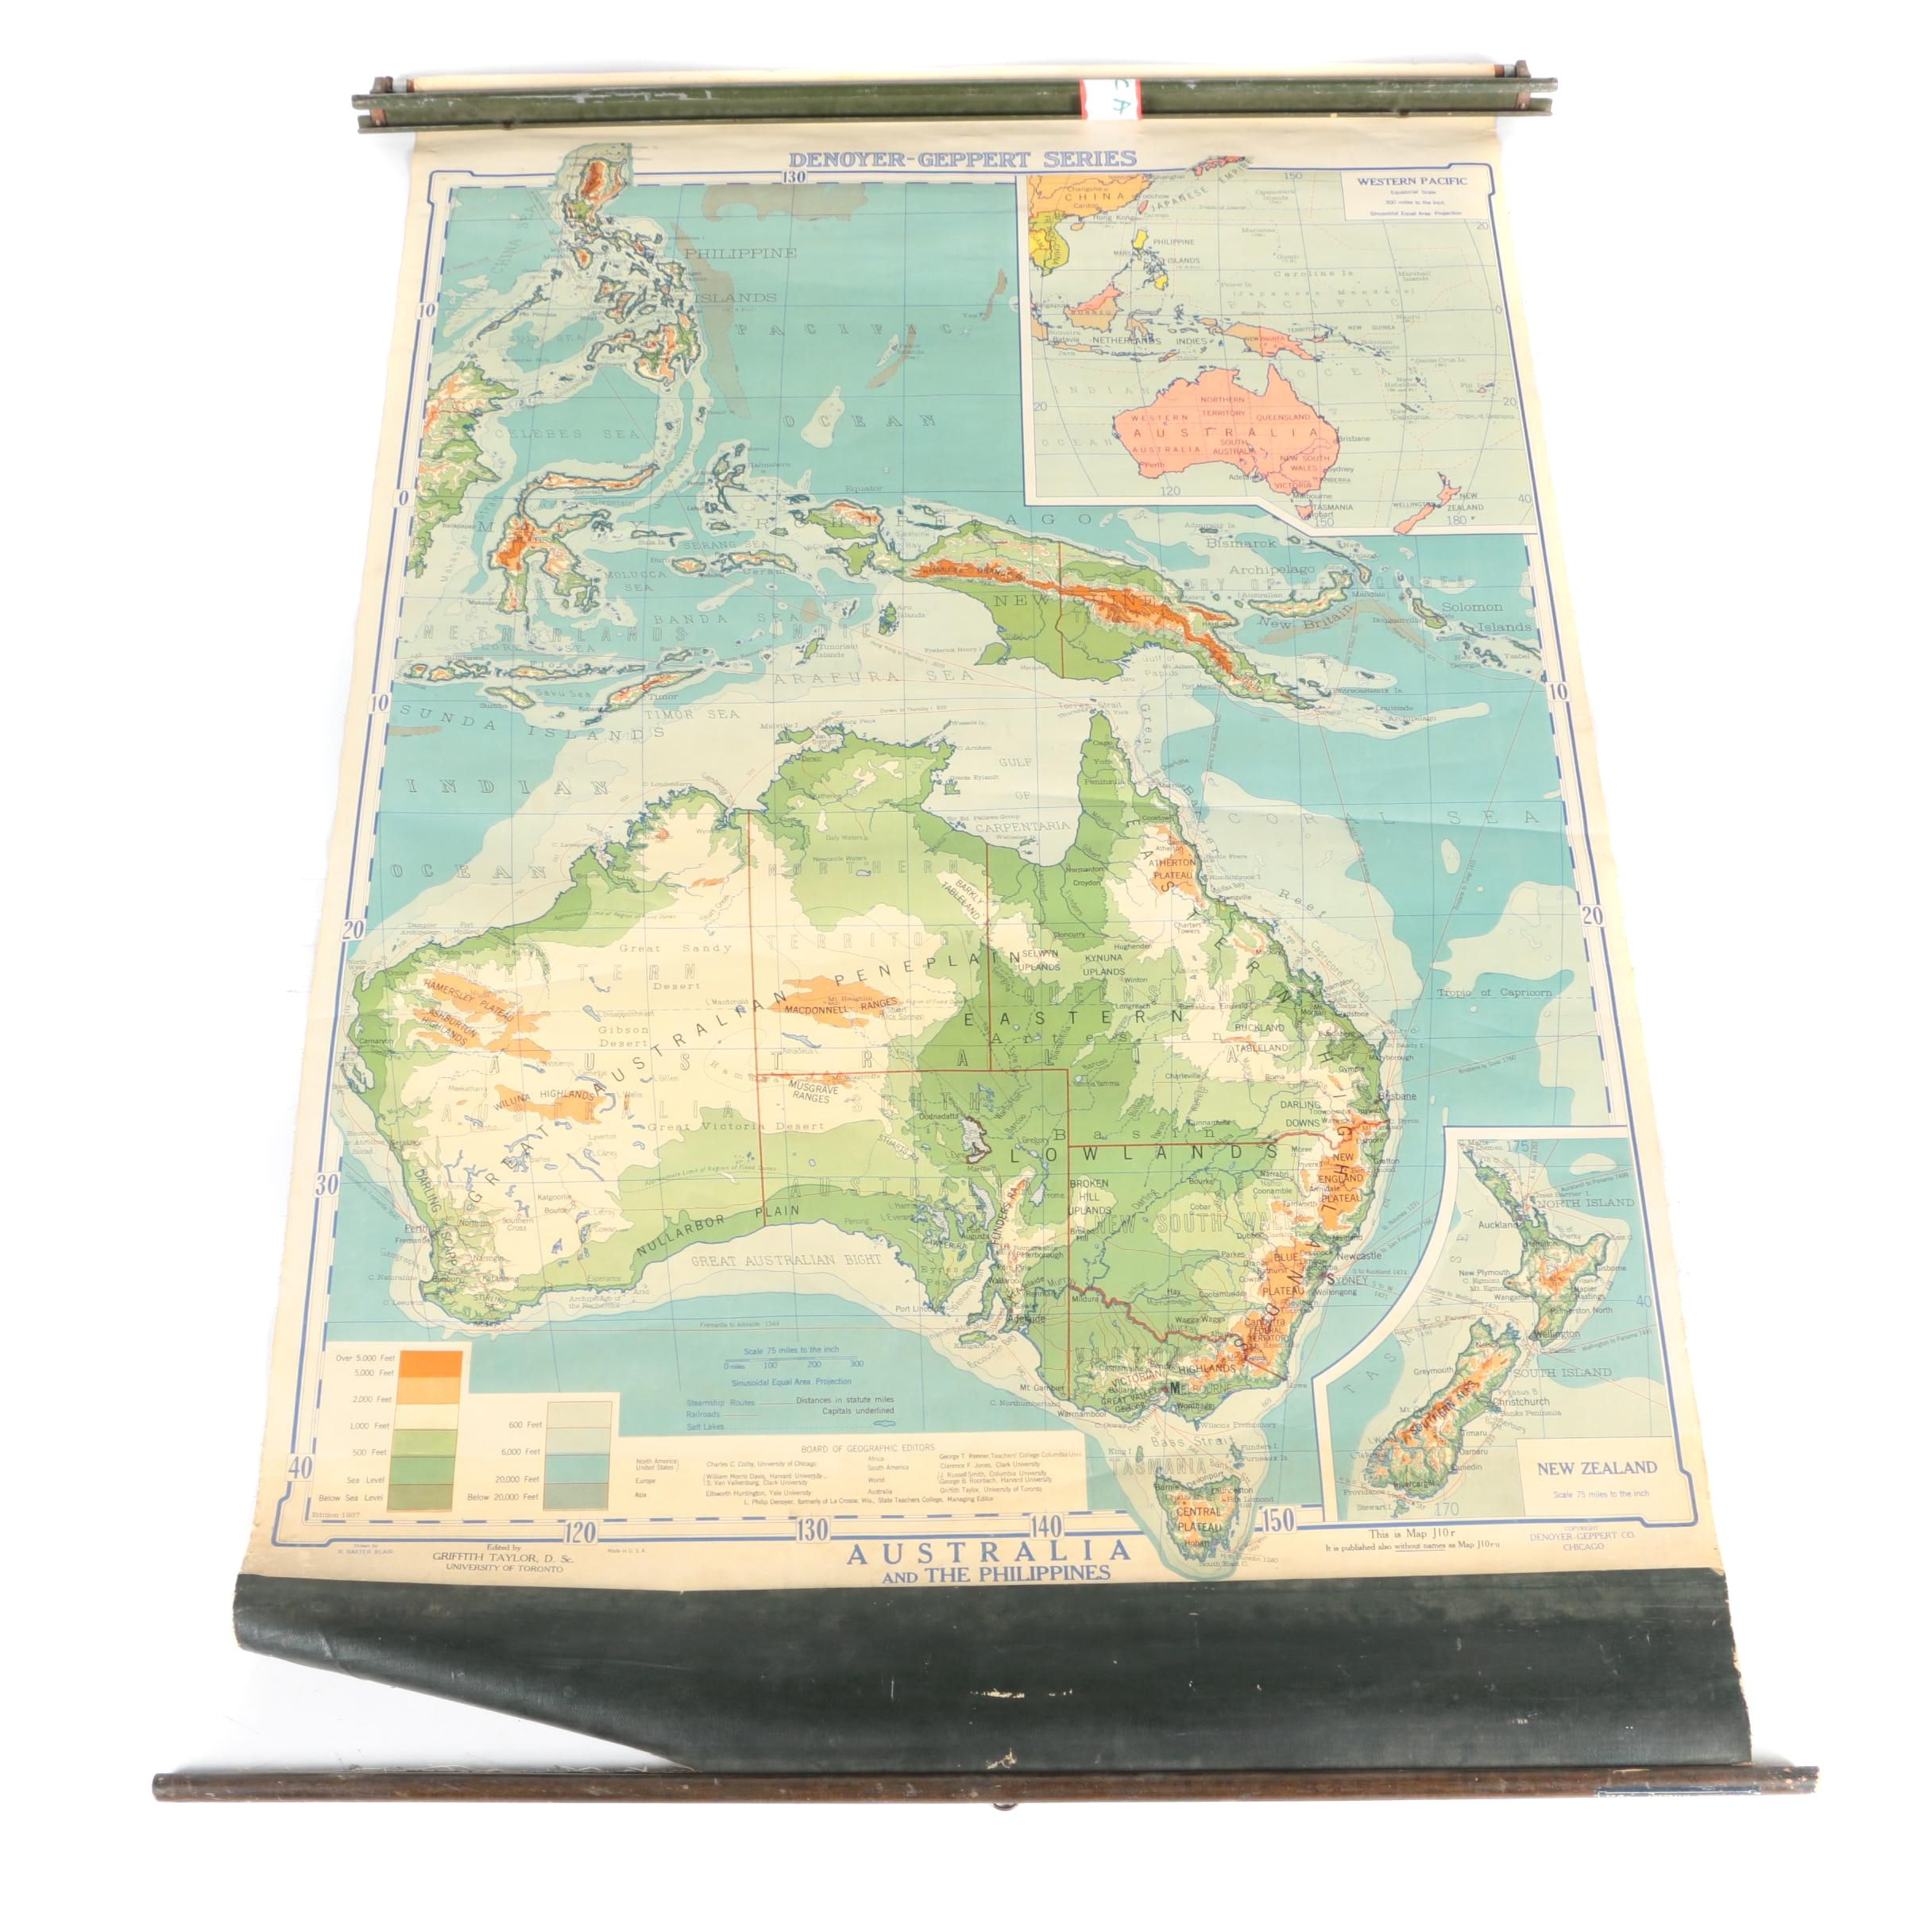 Vintage Wall Map of Australia, New Zealand, and the Philippines